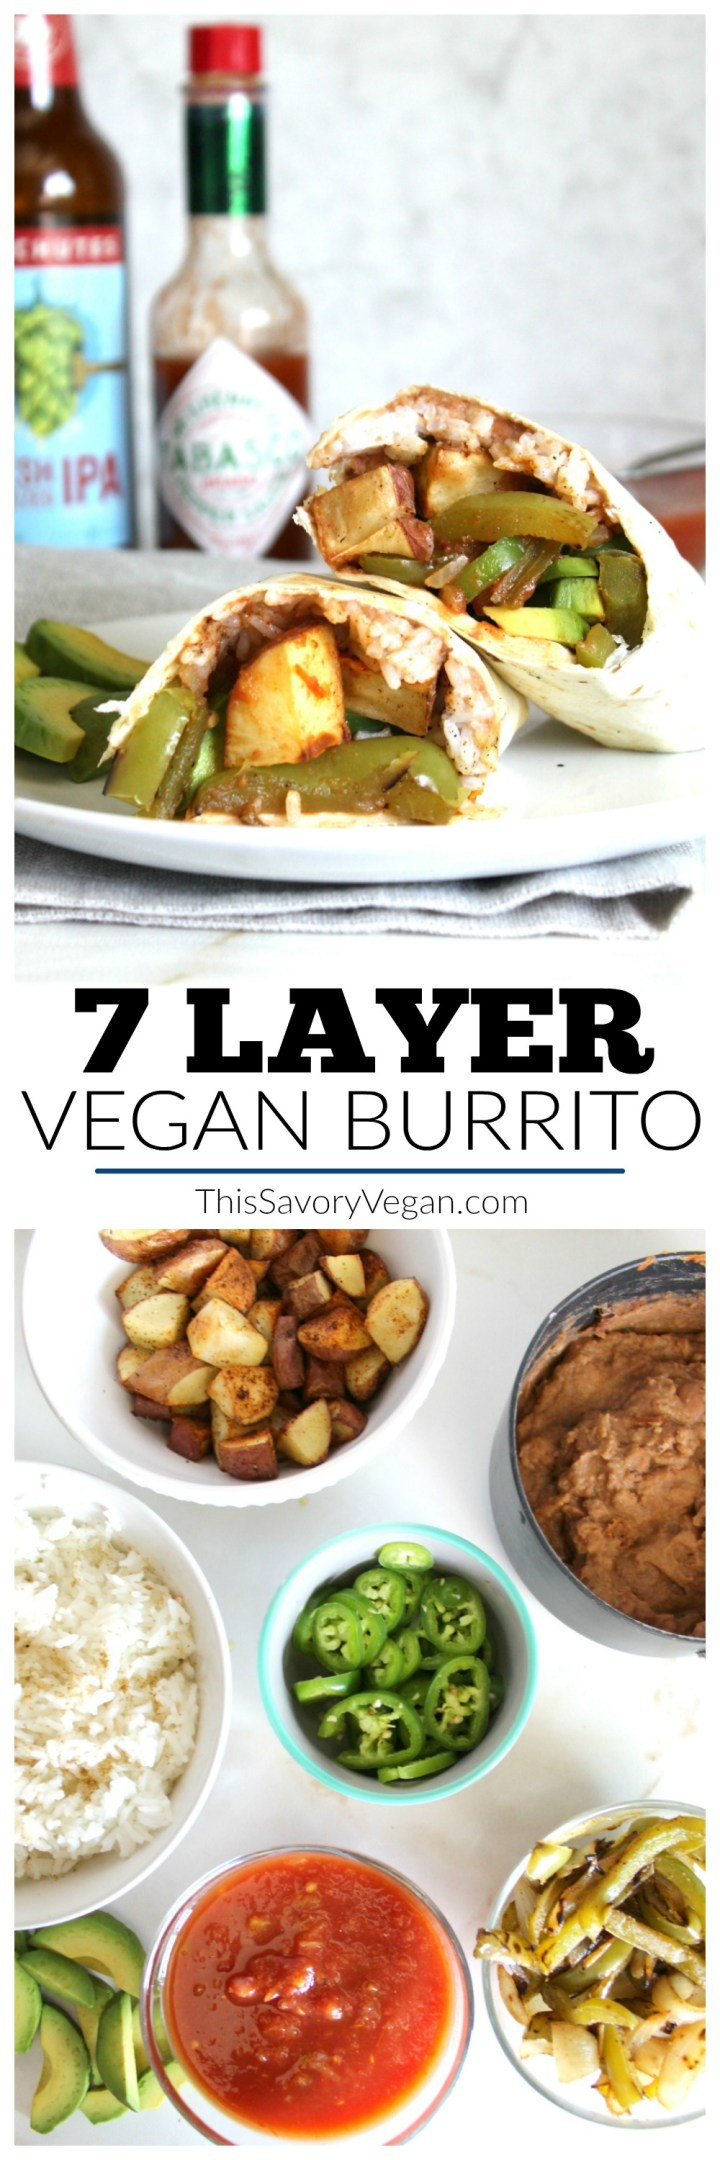 This 7 Layer Vegan Burrito is filling, tasty and healthy. Better than anything you will get at Taco Bell | ThisSavoryVegan.com